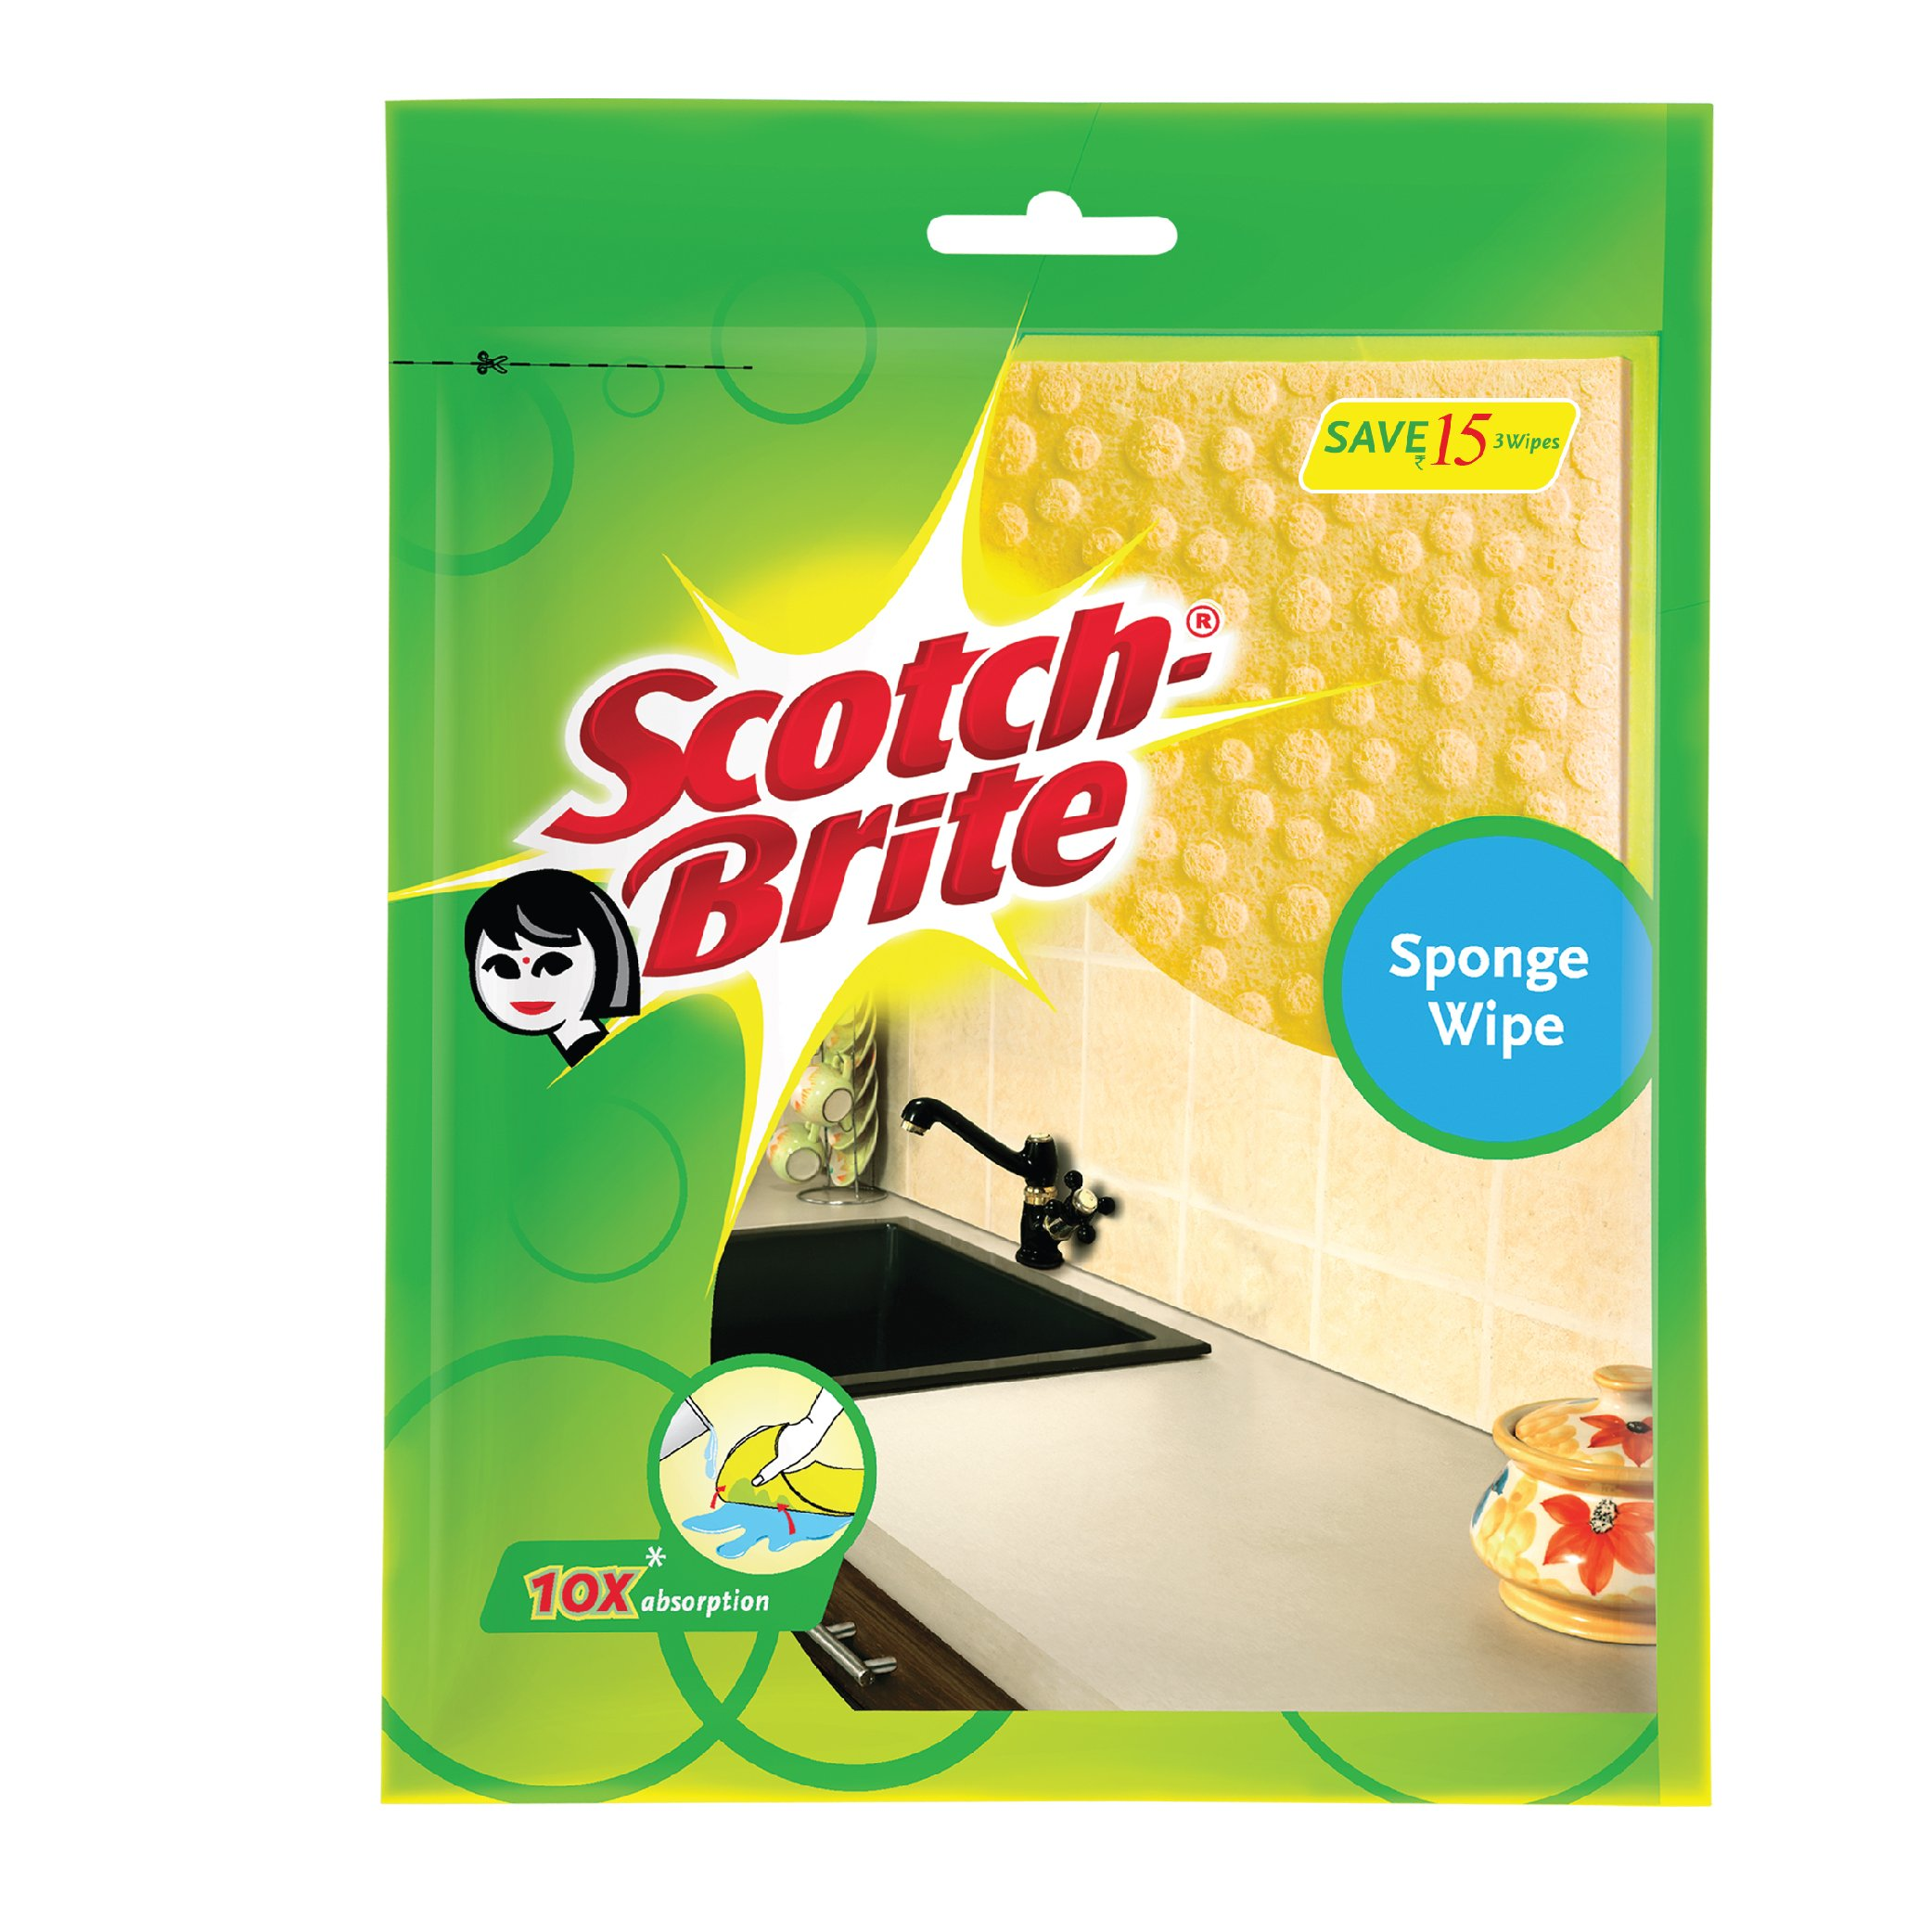 Scotch-Brite Sponge Wipe, Pack of 3 (Color May Vary) product image